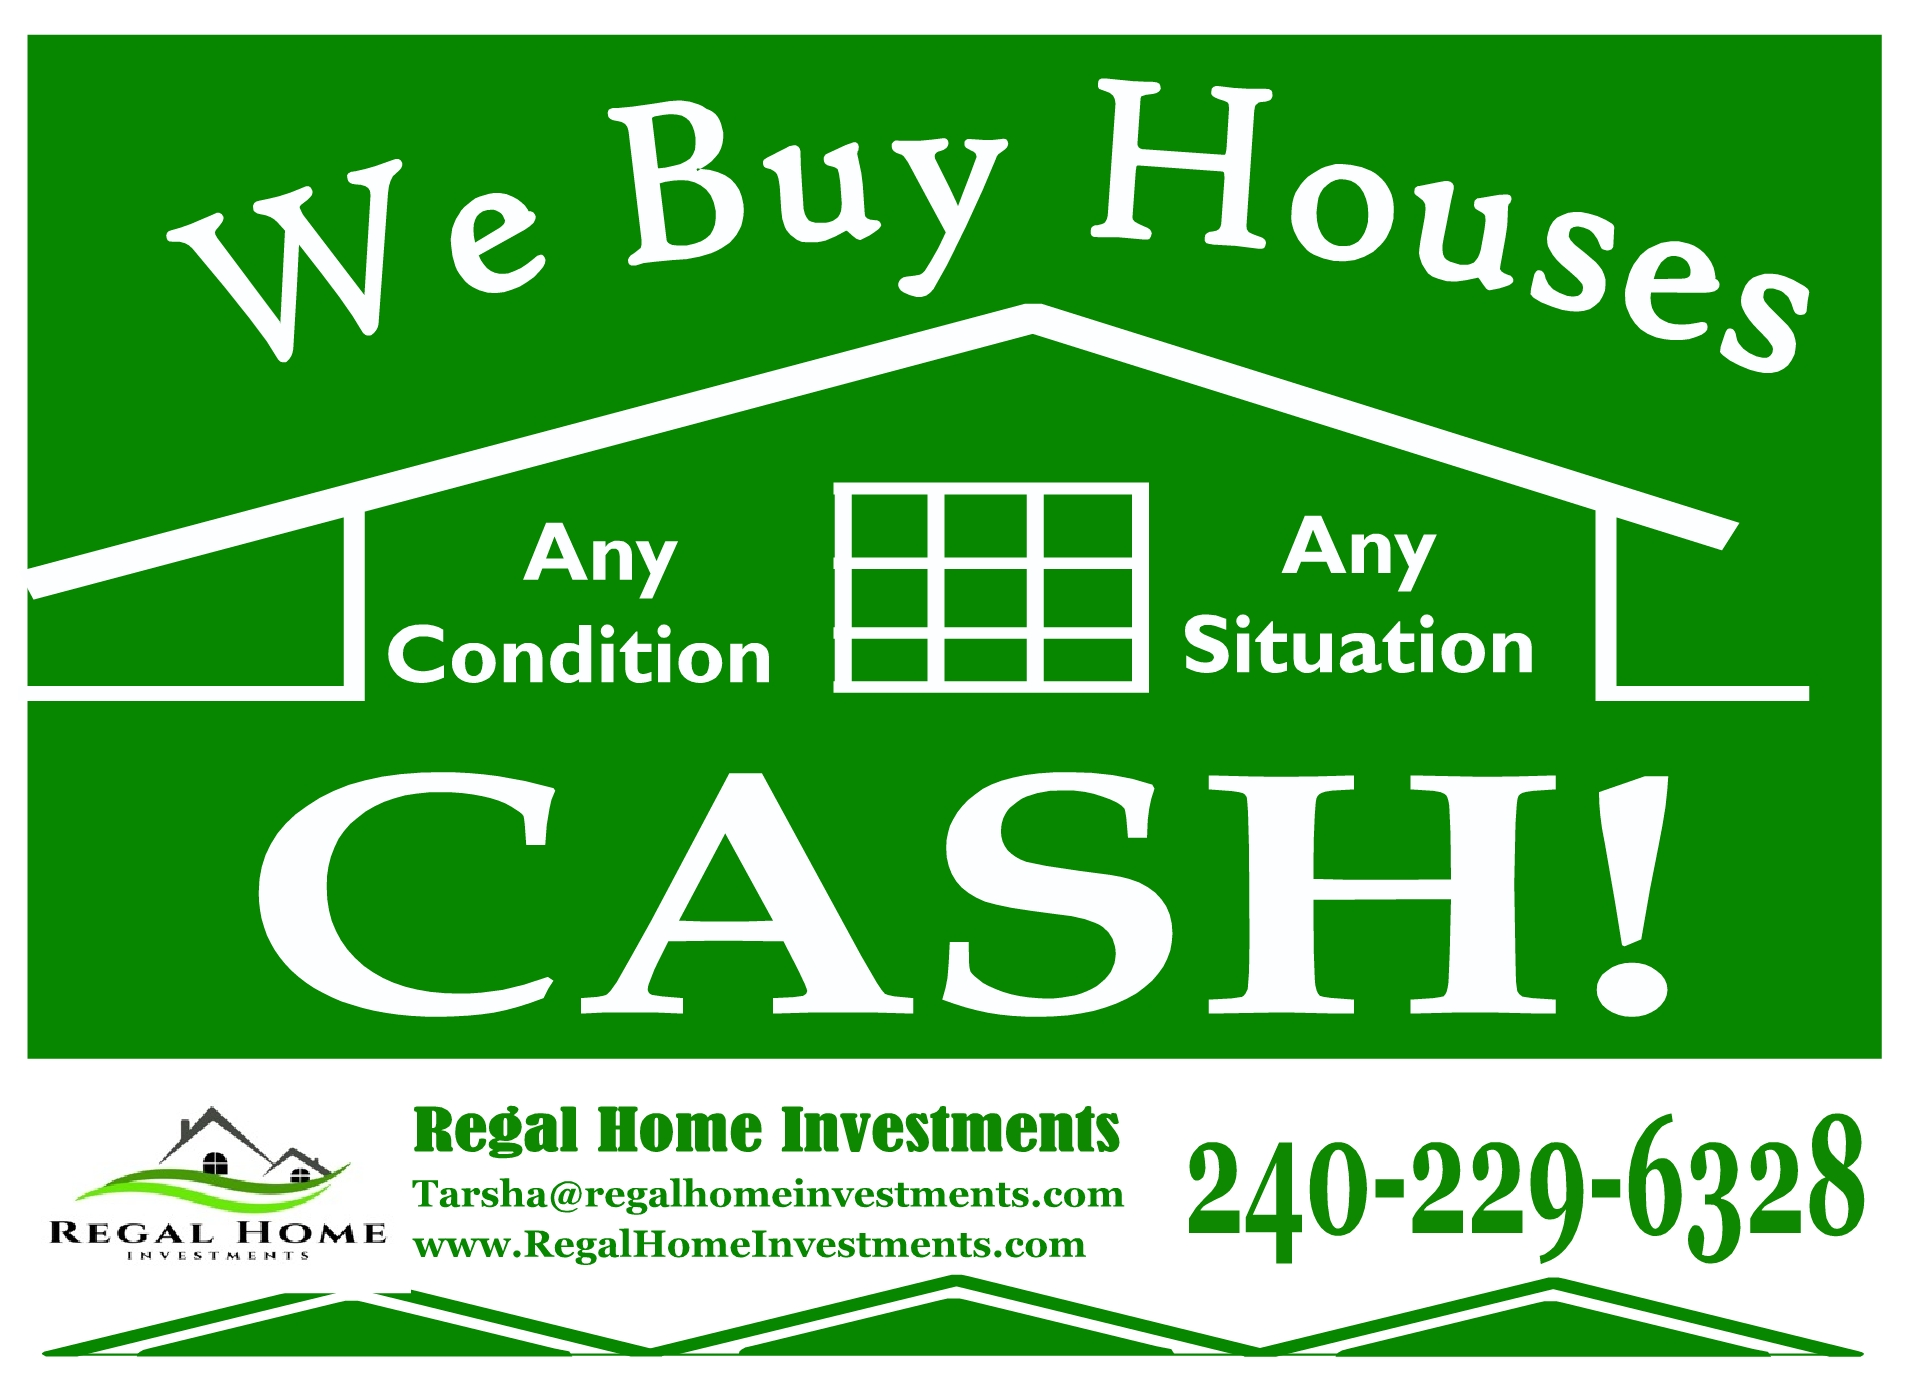 We Buy Homes in DC, MD and VA! Any condition! Any Situation!